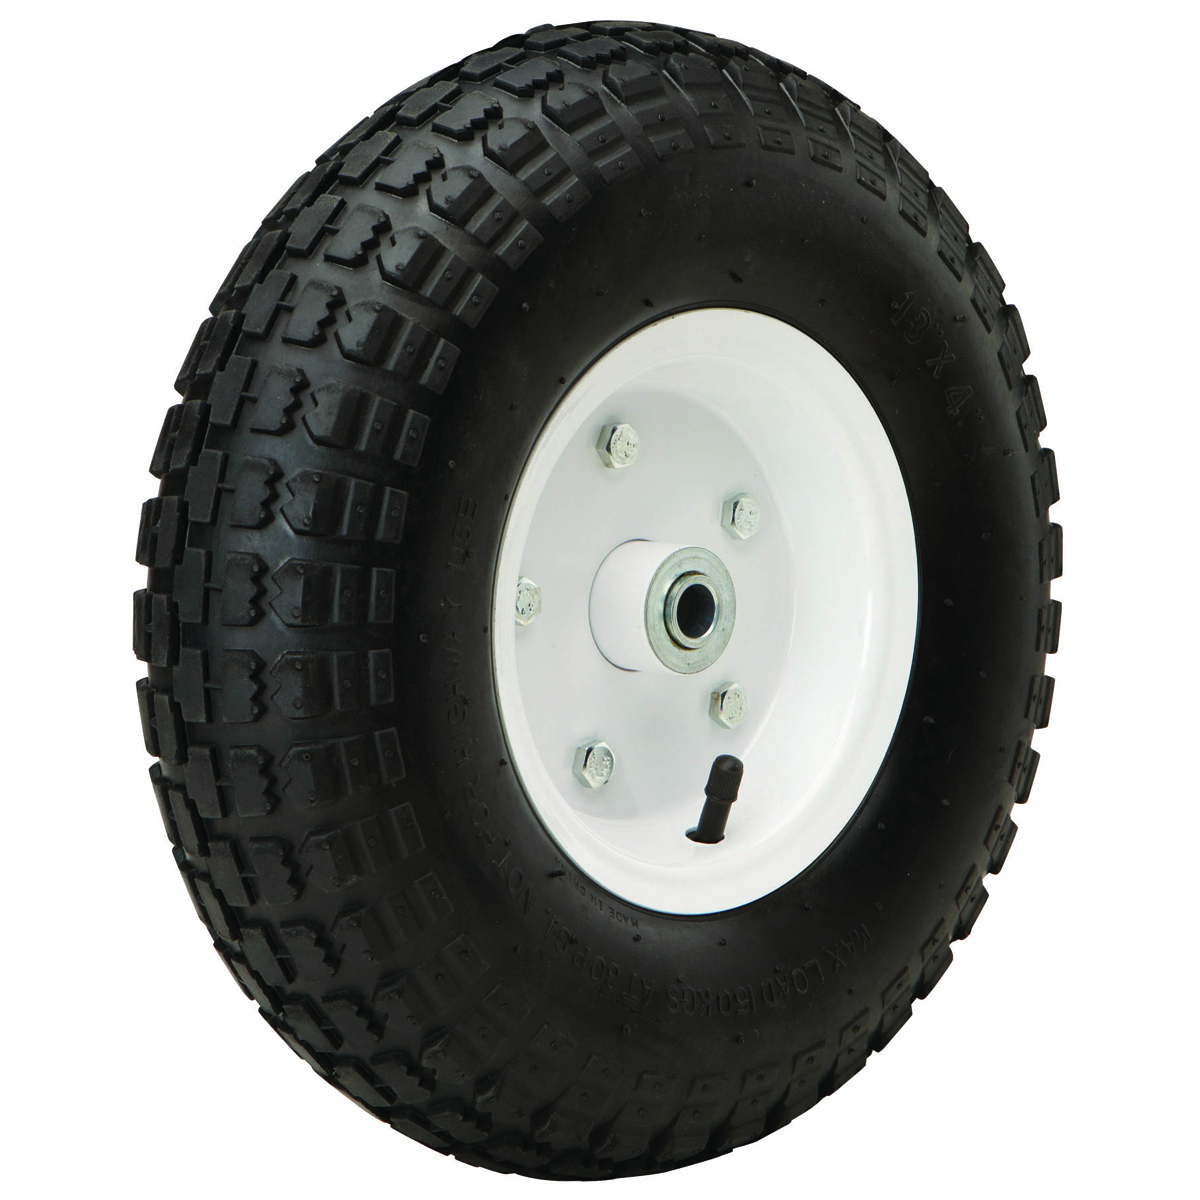 13 In Heavy Duty Pneumatic Tire With White Hub